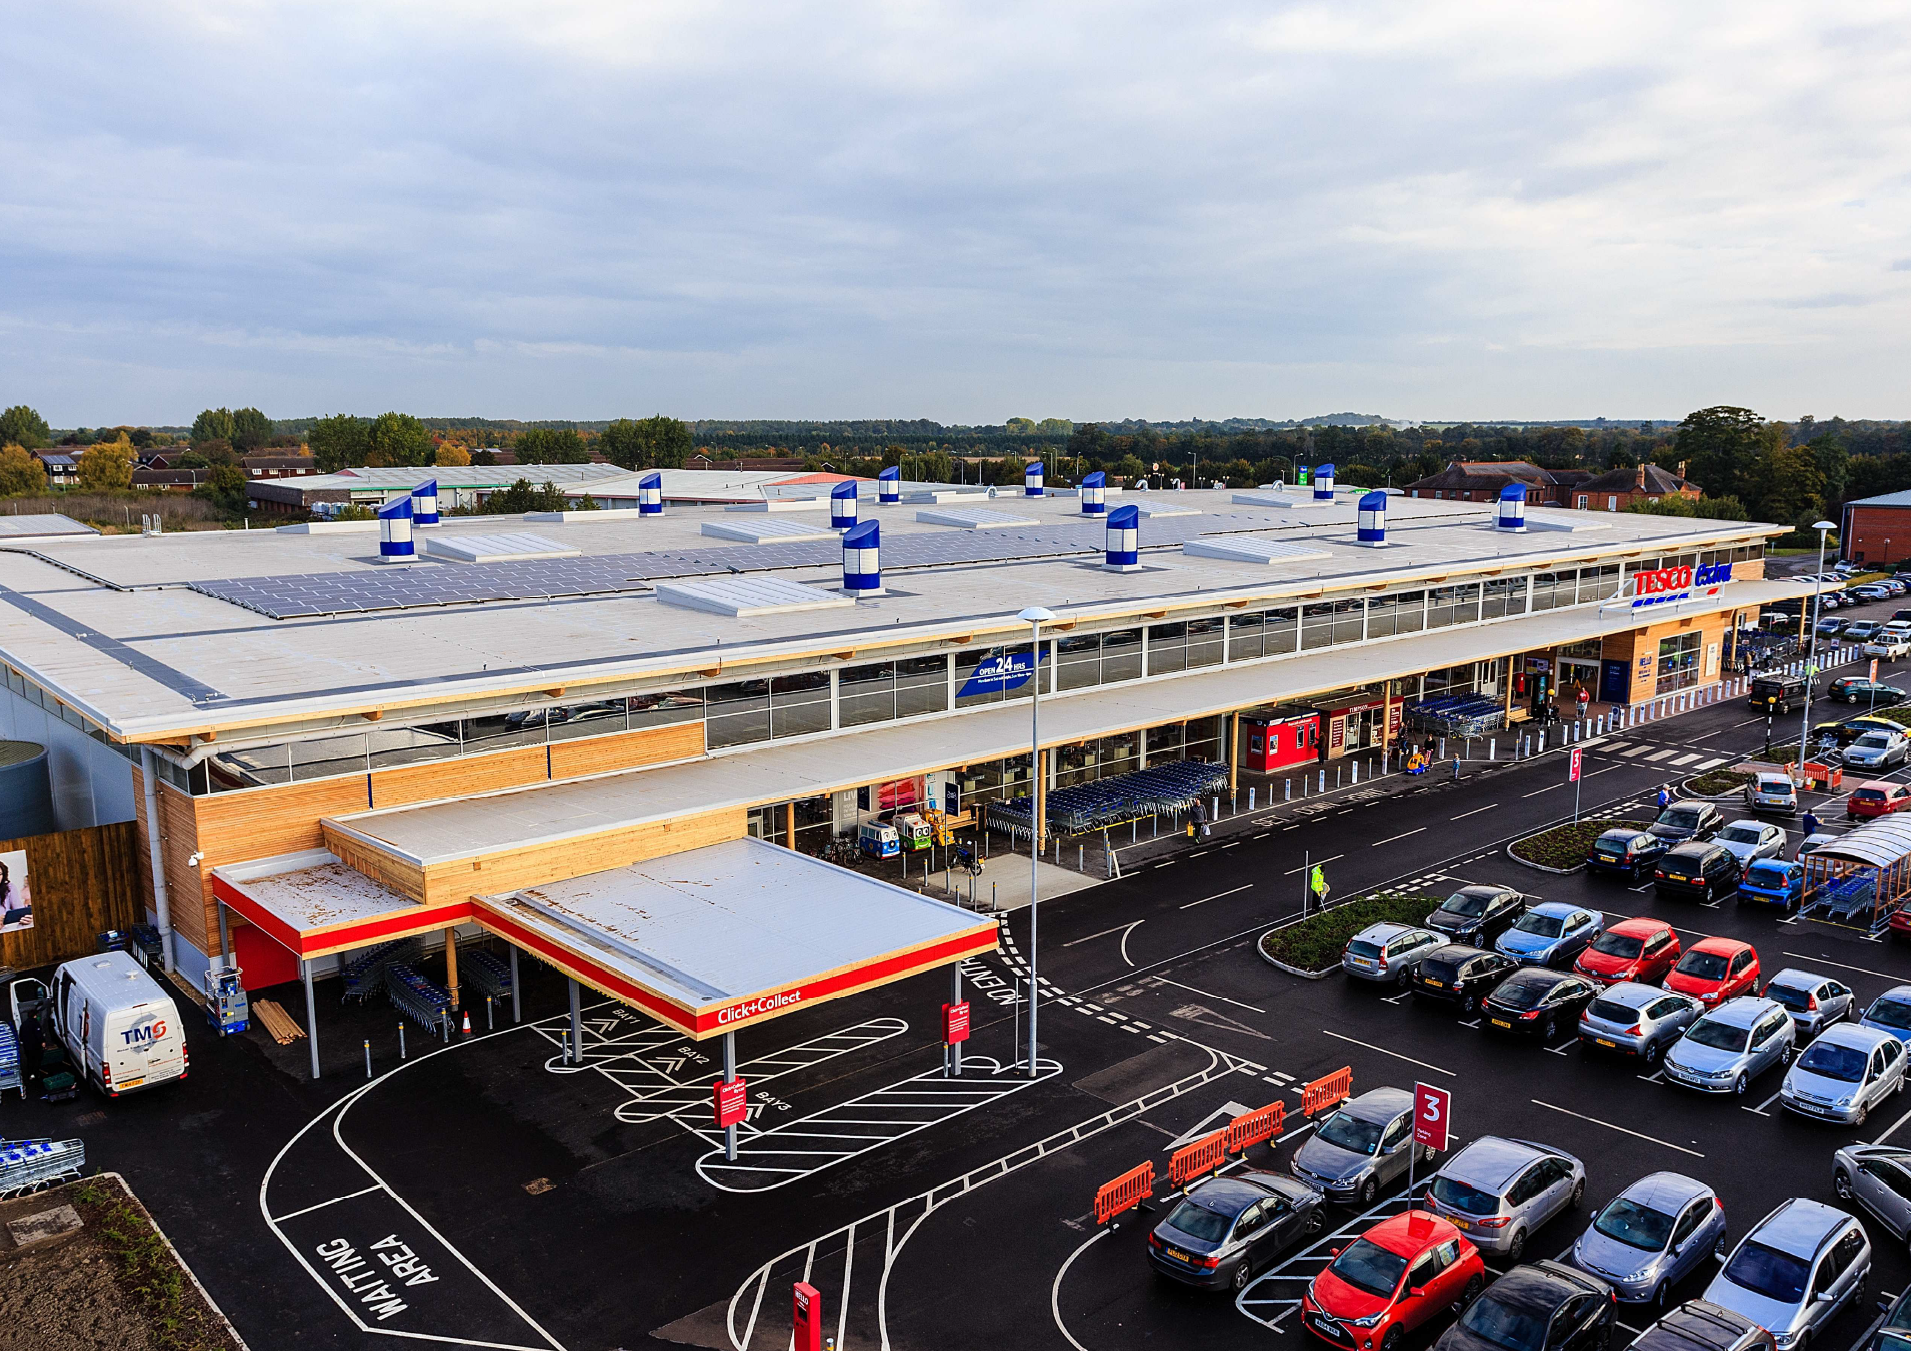 Tesco Extra at Newmarket (Photo: Supermarket Income REIT)